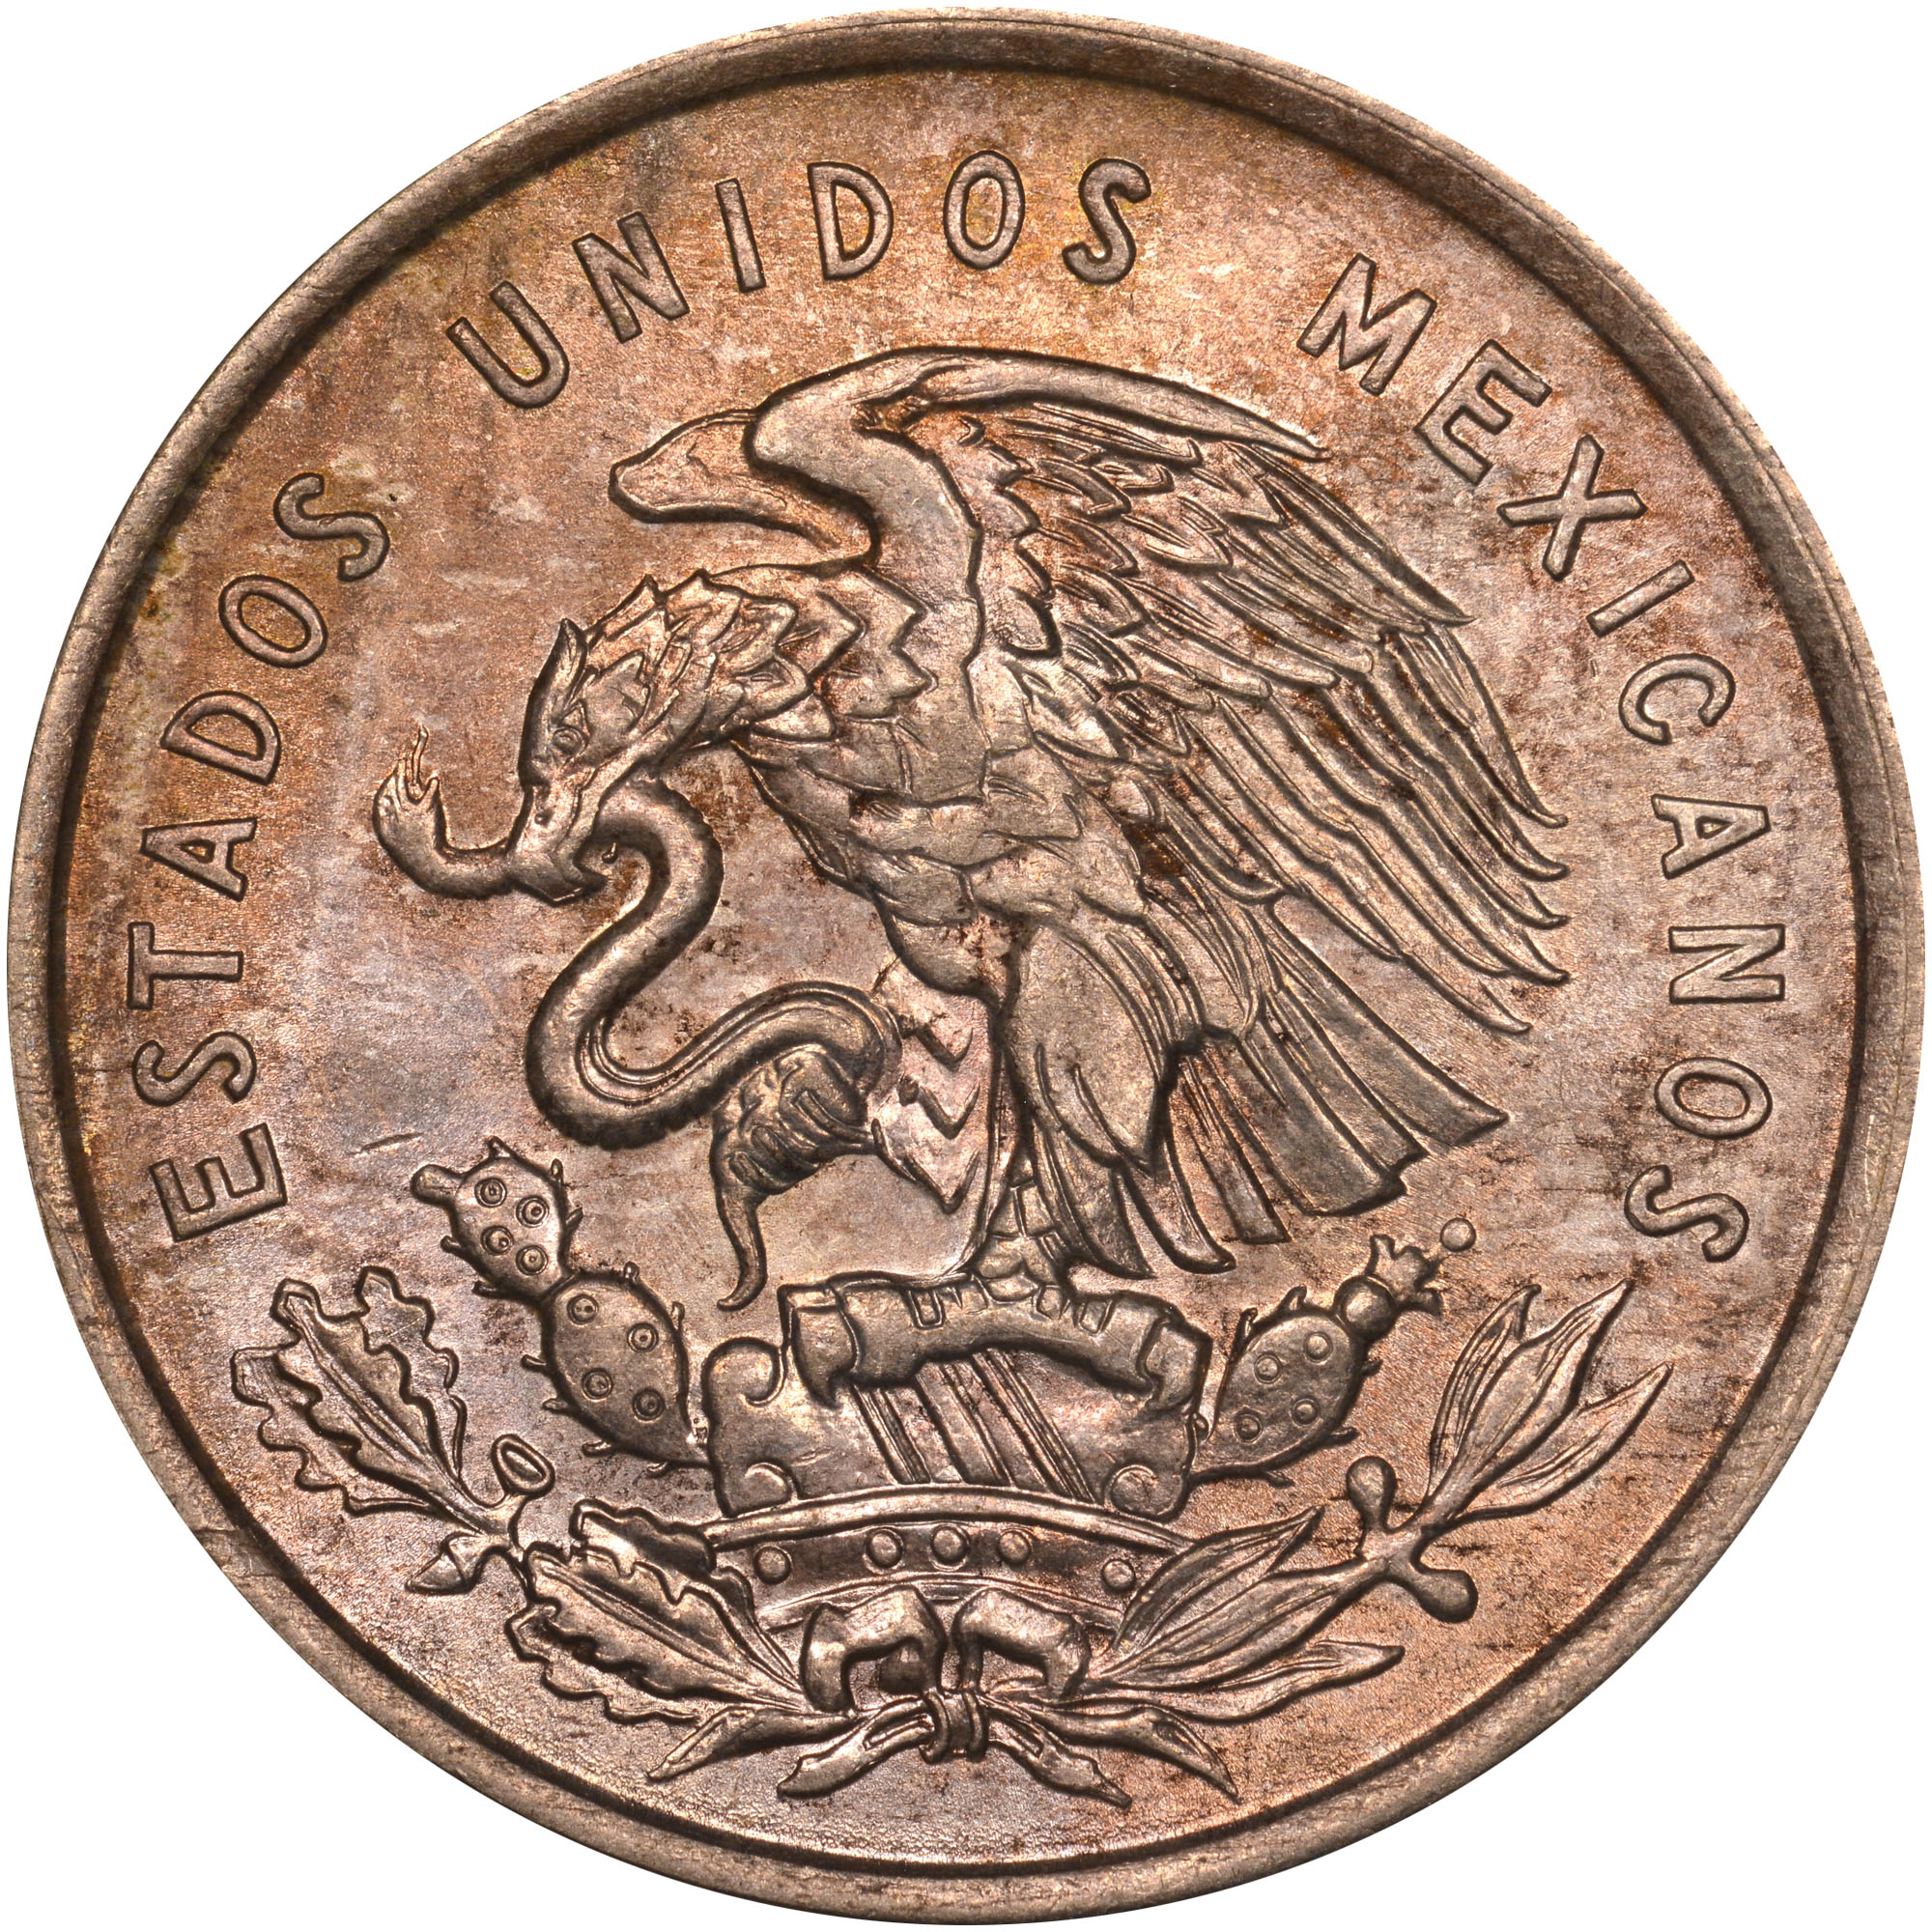 1950-1951 Mexico 50 Centavos obverse